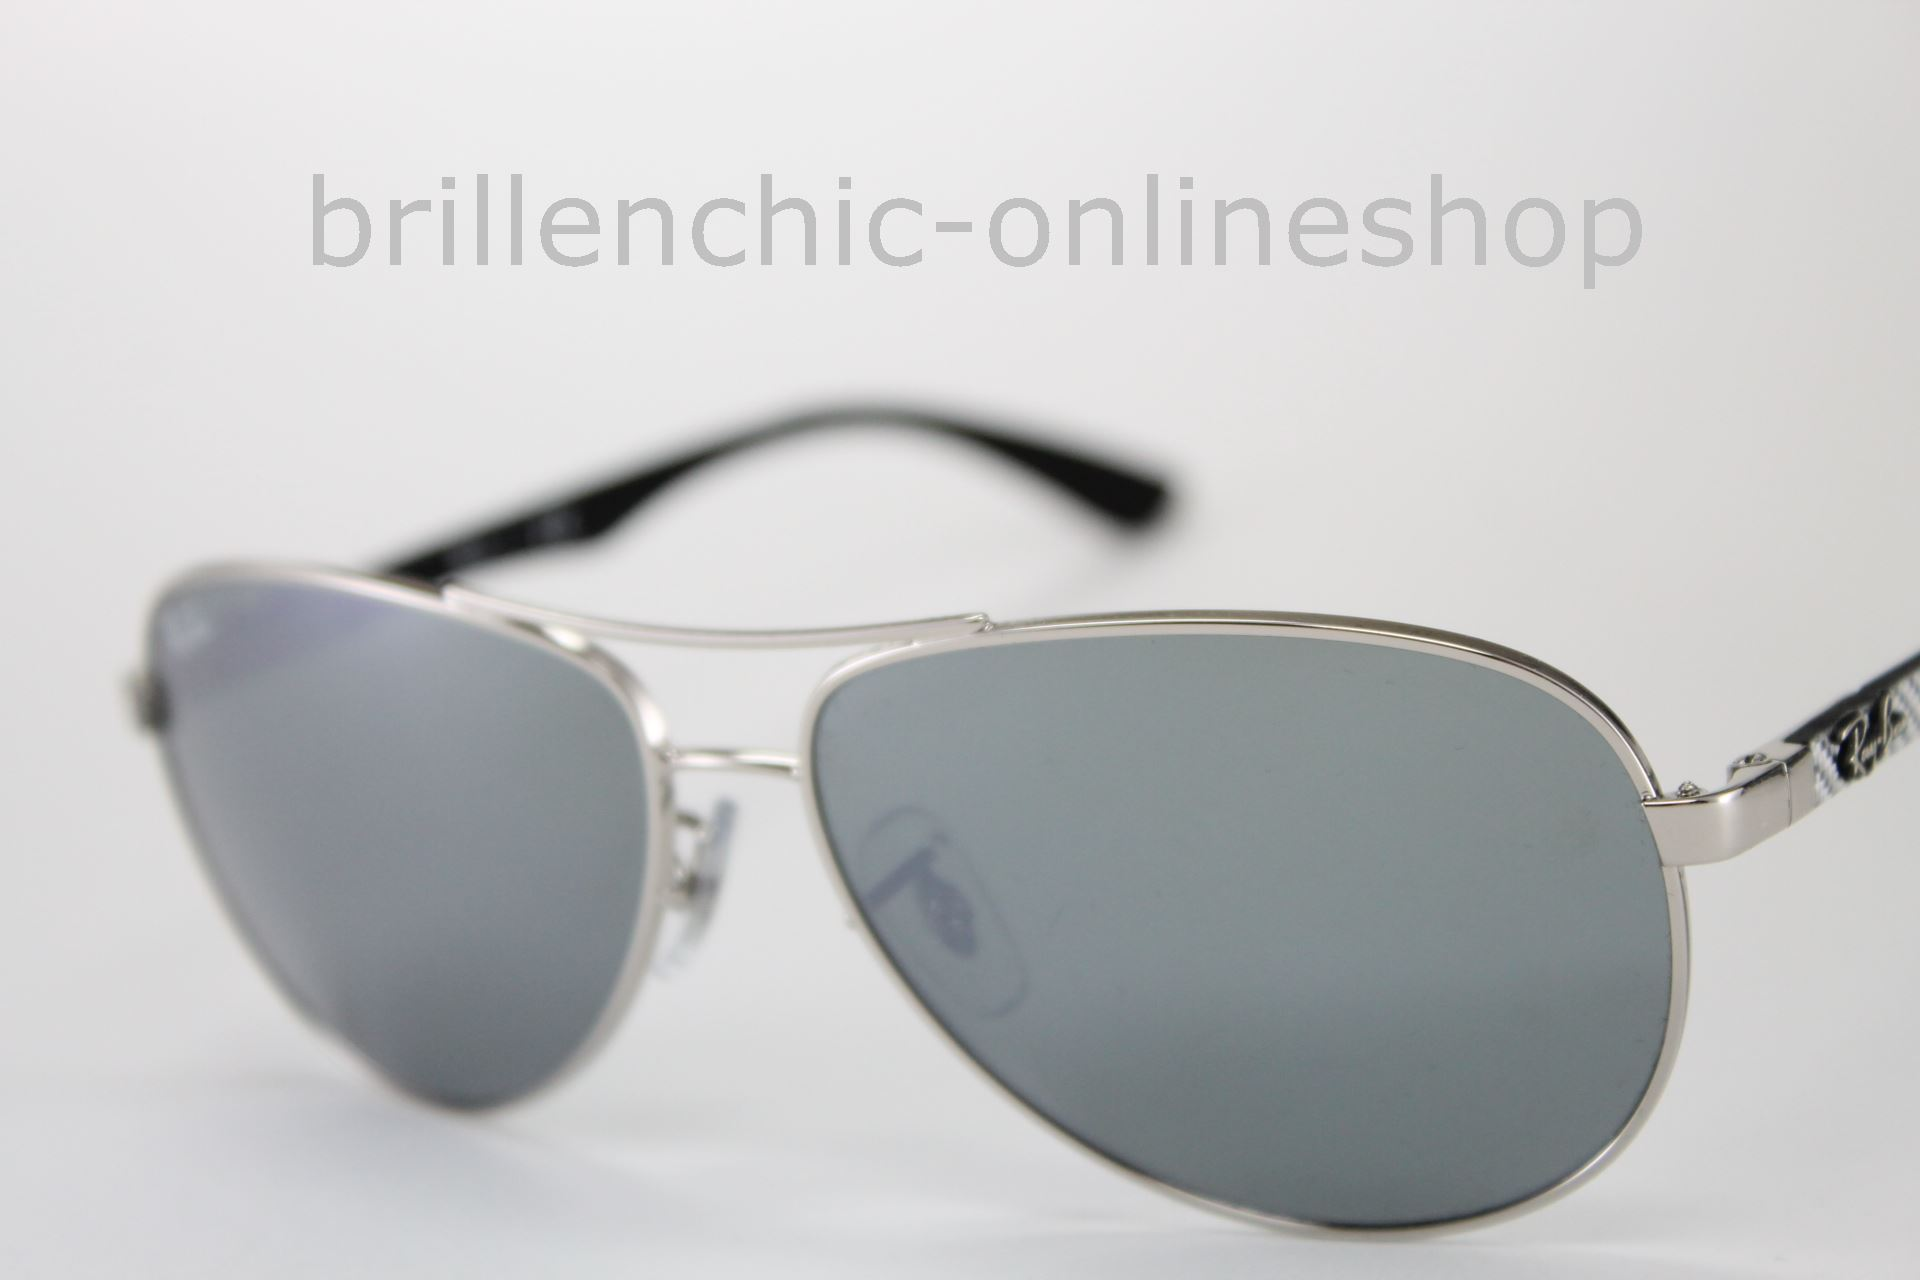 bf52c5d2101 Brillenchic-onlineshop in Berlin - Ray Ban CARBON RB 8313 003 40